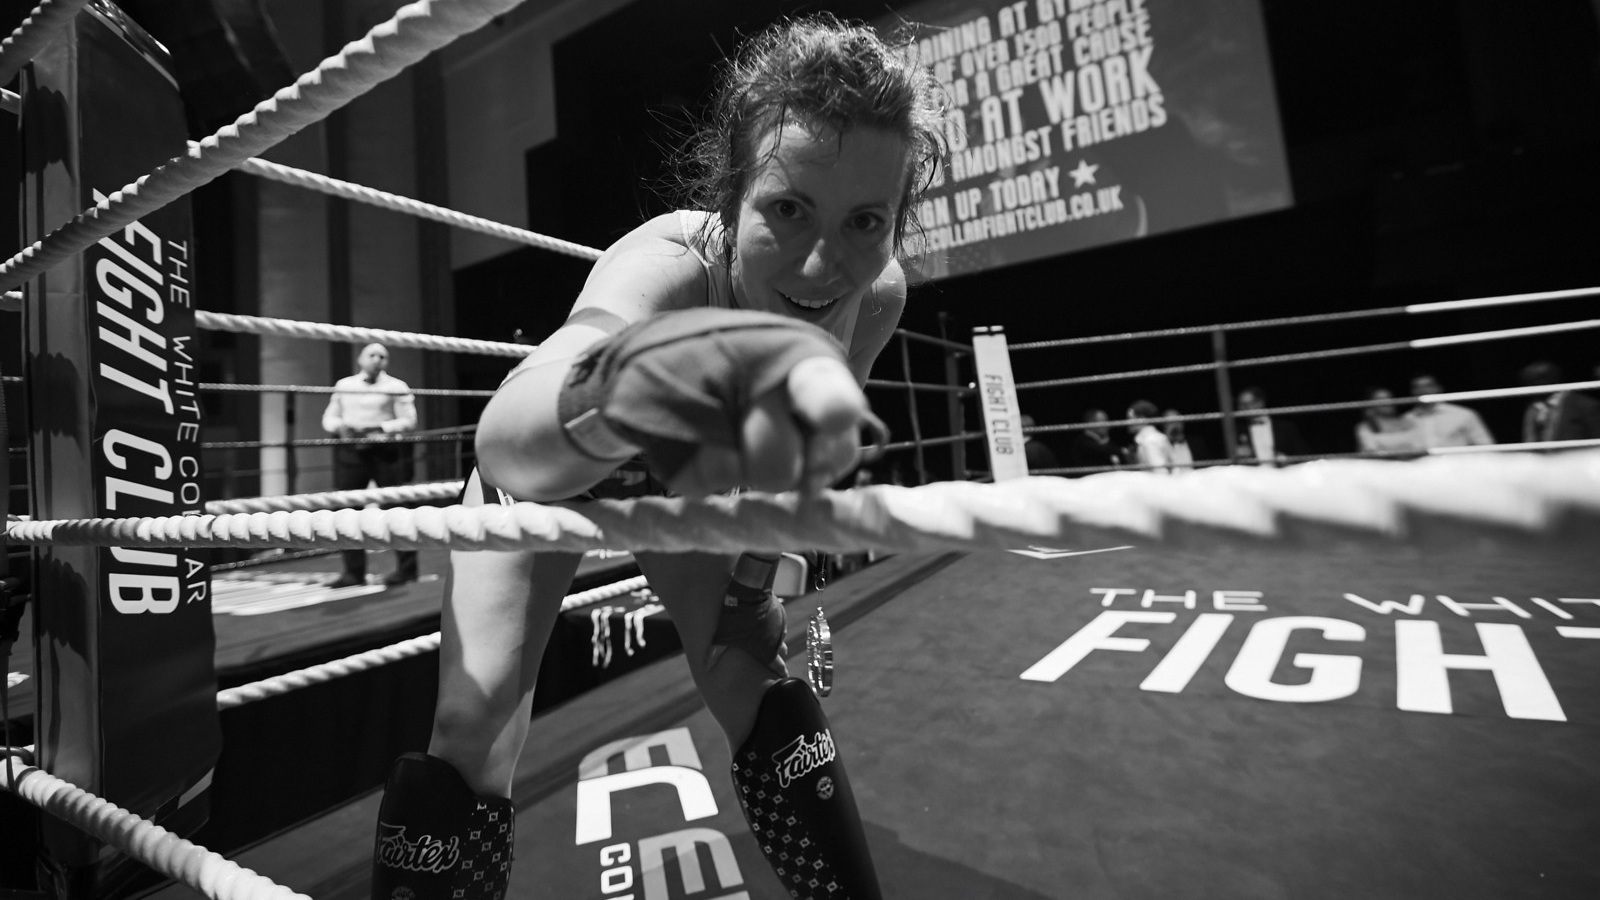 Boxing Helped Me Fight Through Trauma - Martial arts pulled me from the emotional fallout of grief and powerlessness. A personal piece for Medium about why I started Thai boxing.